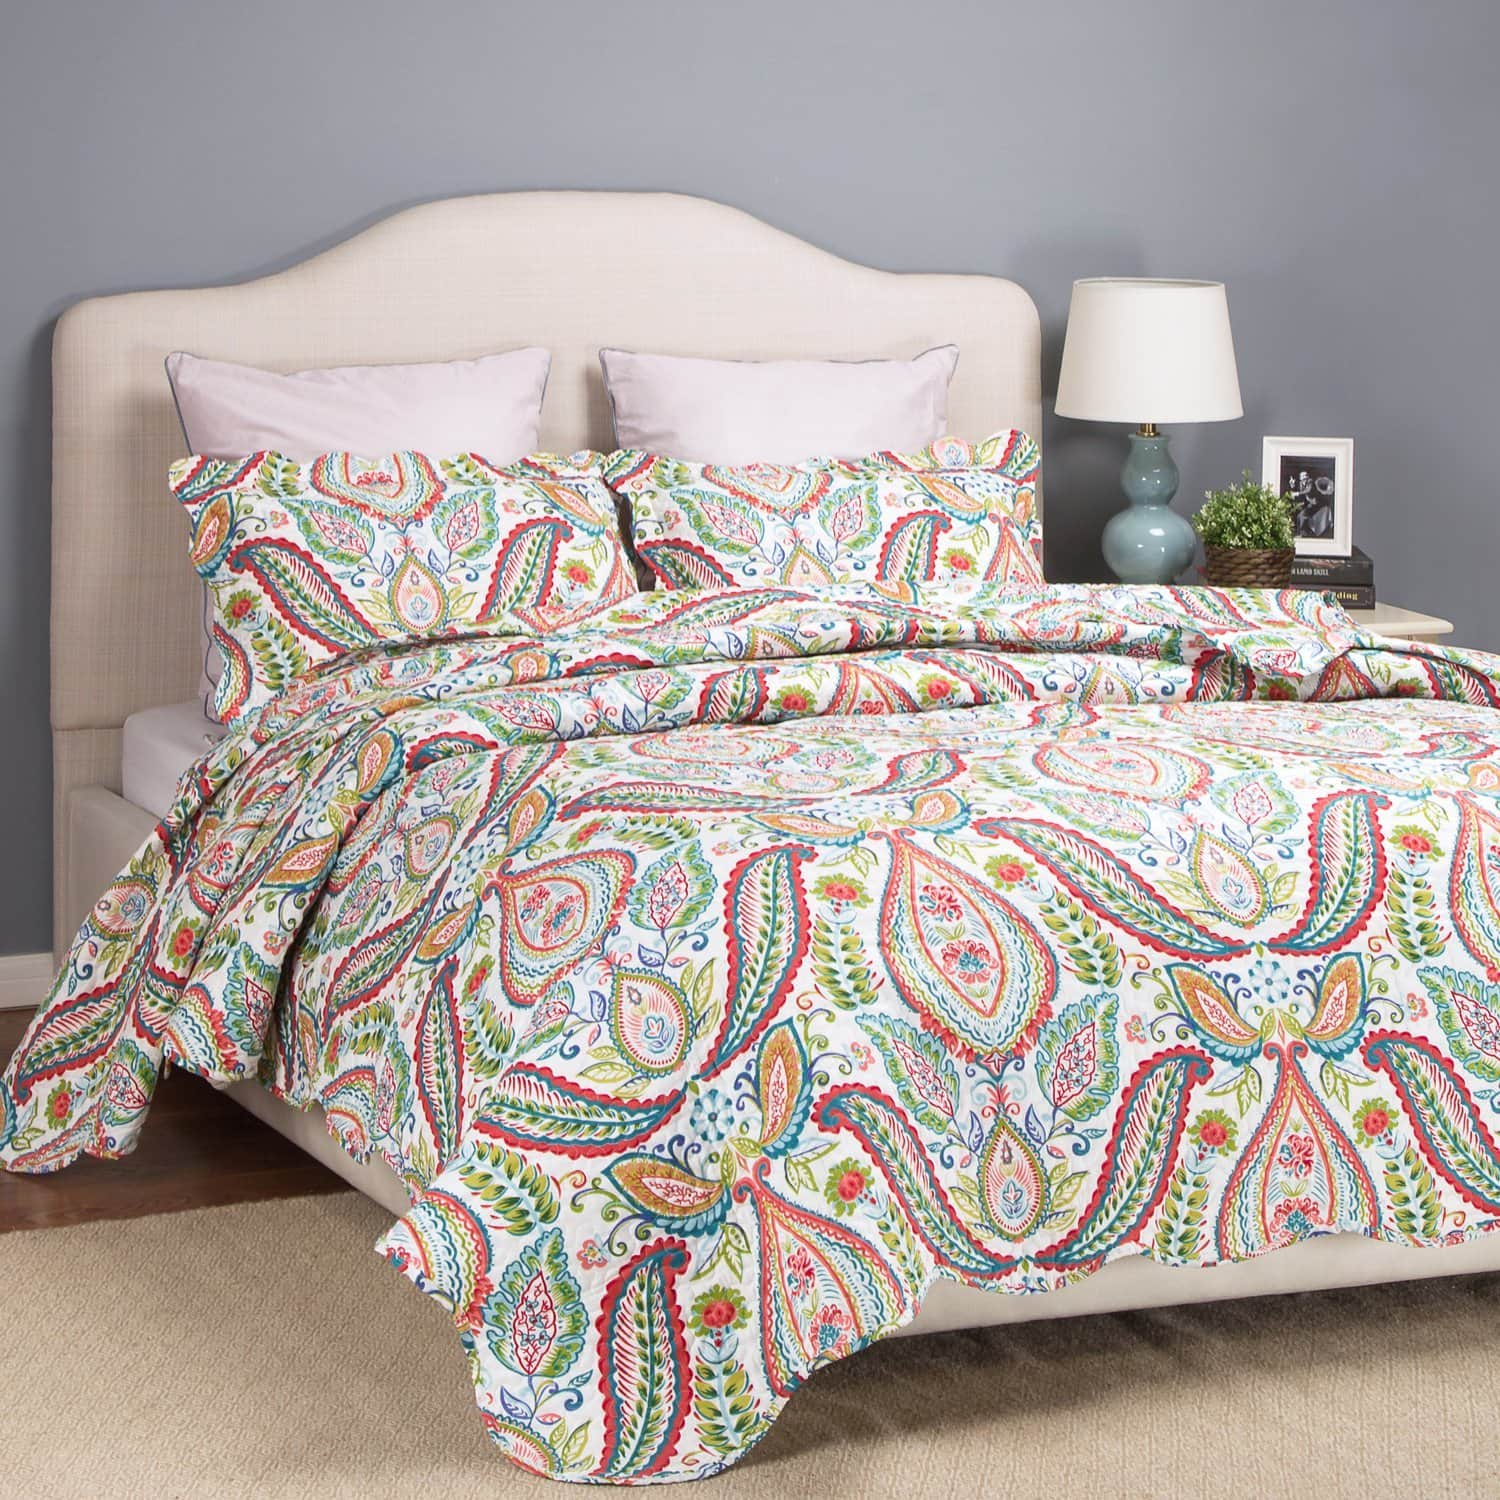 Clearance Printed Quilts Bedspread Coverlet Set Twin $11.49 King $19.99 @ Walmart.com